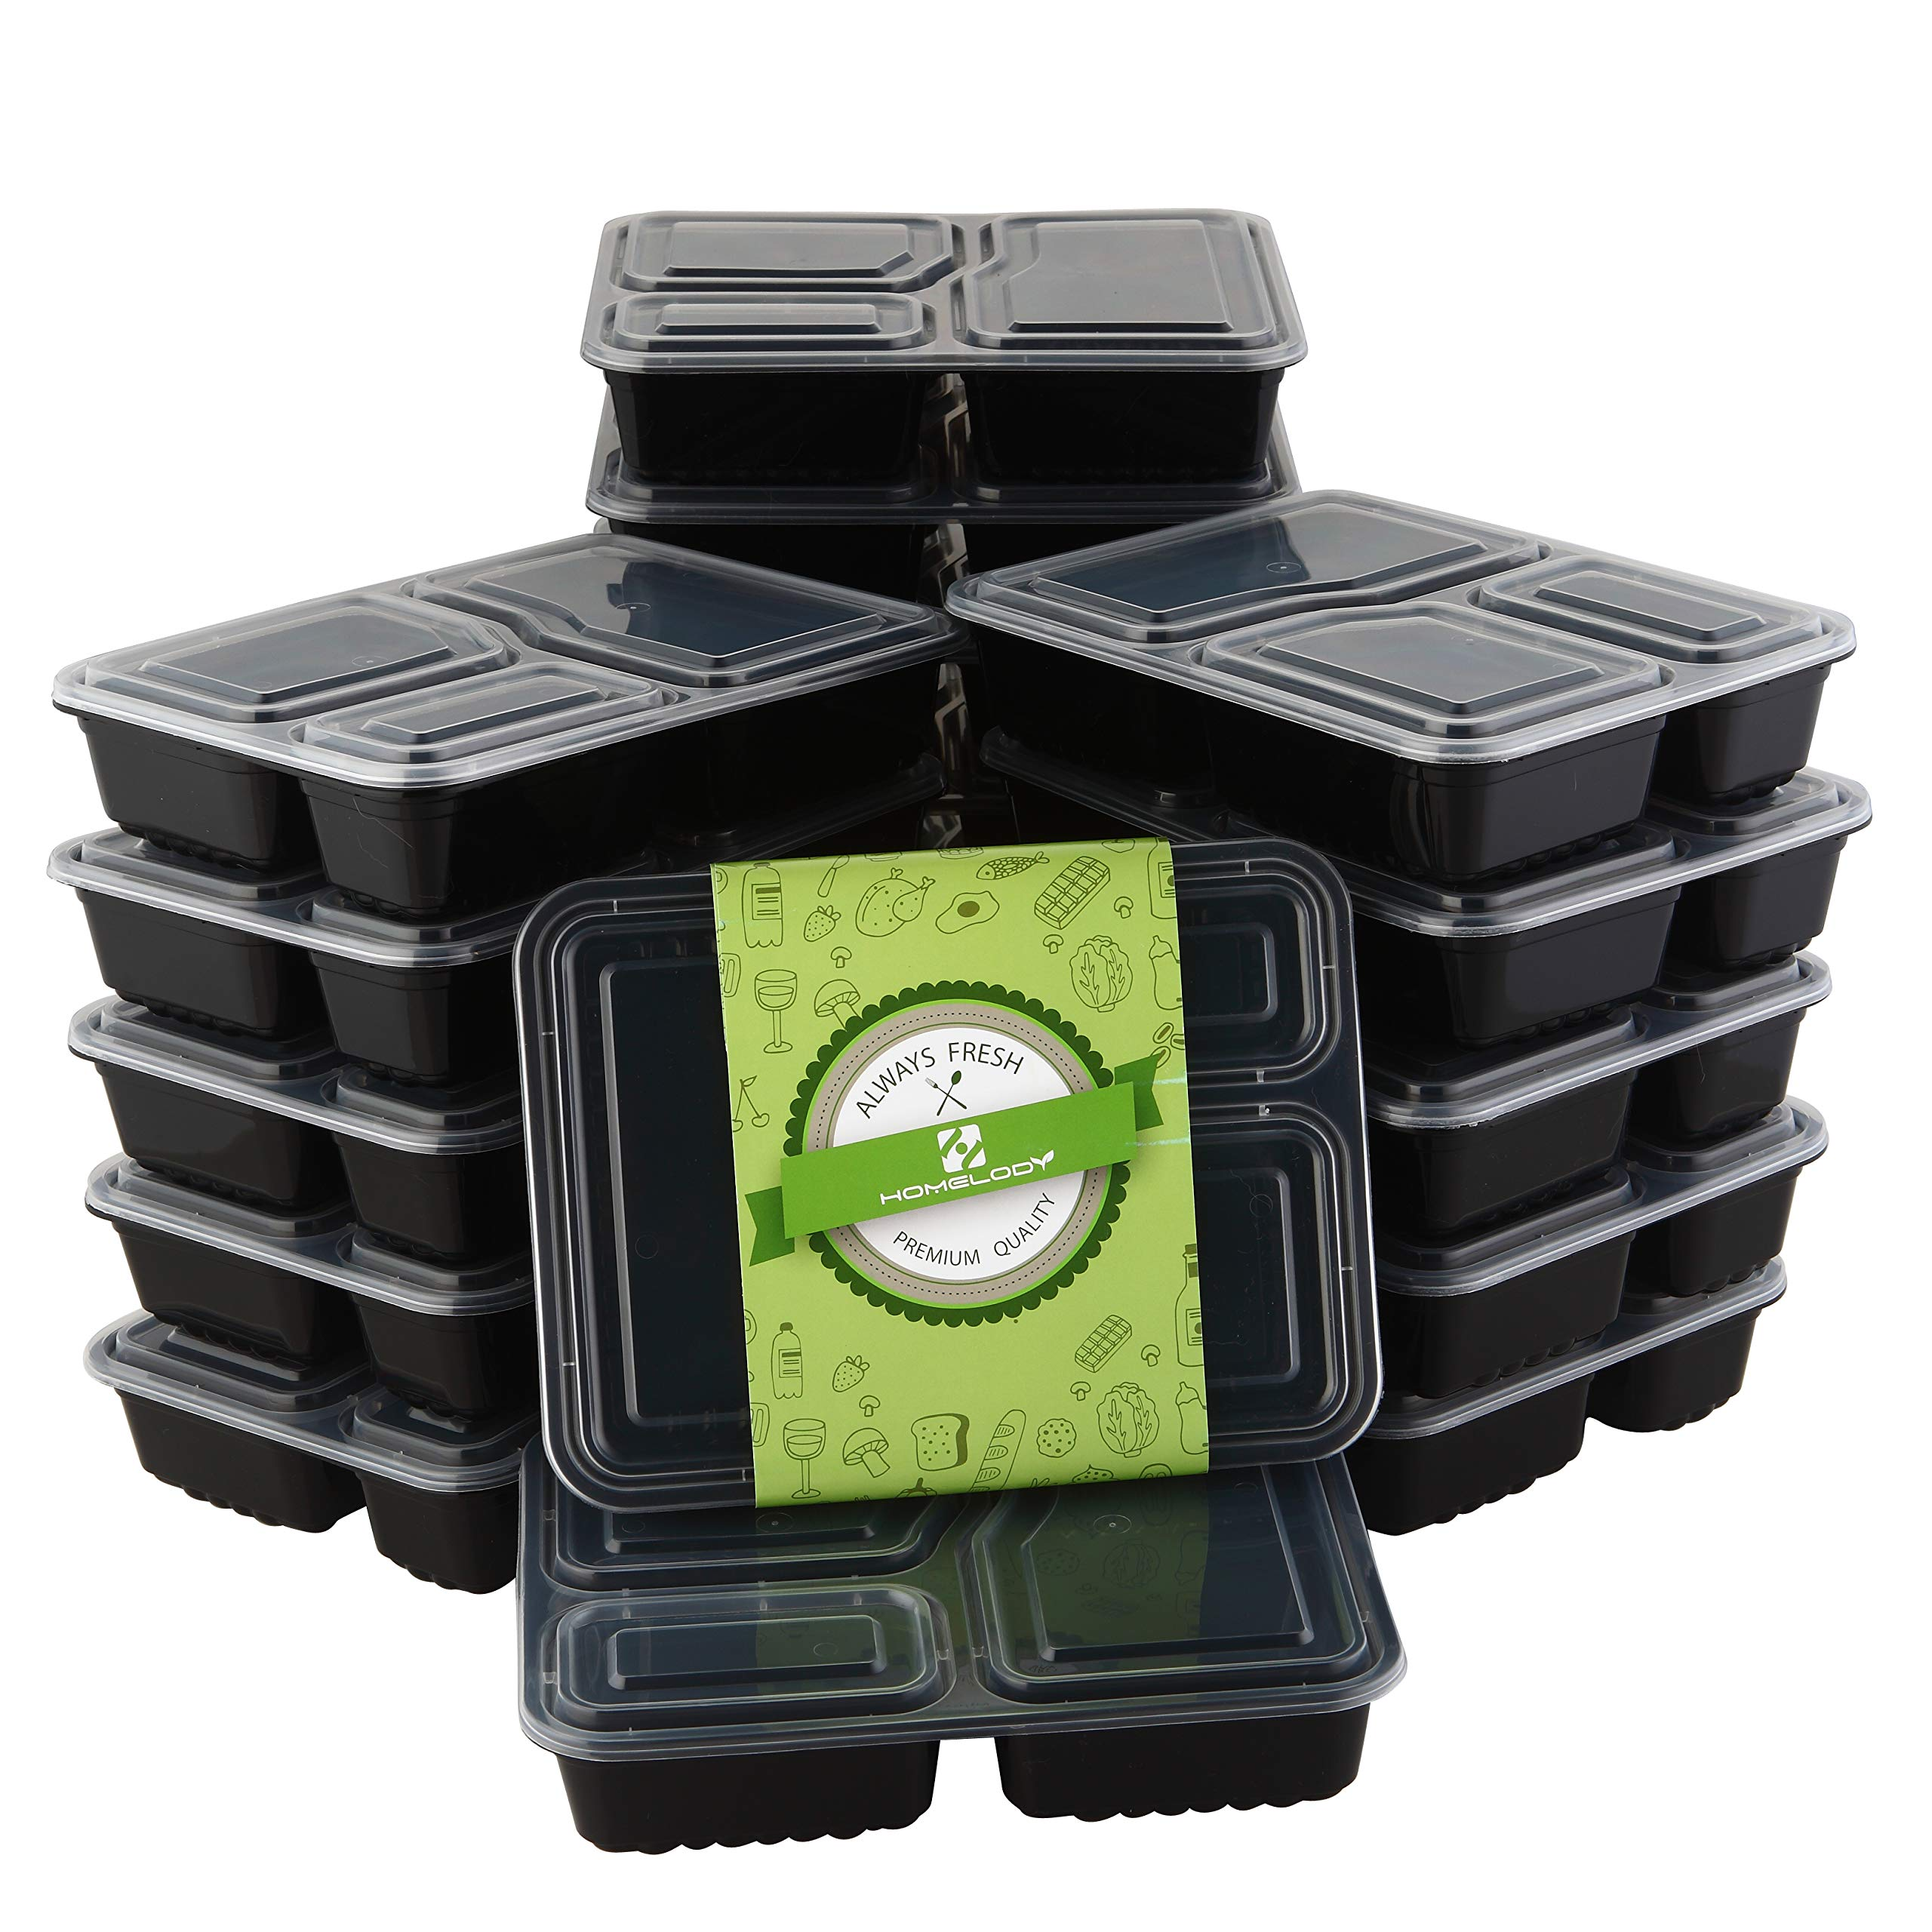 HOMELODY Meal Prep Containers 3 Compartment [20 Pack] Bento Box with Lids,BPA Free Reusable Food Storage Lunch Box,Microwaveable,Dishwasher and Freezer Safe Food Containers for Portion Control(34 oz)